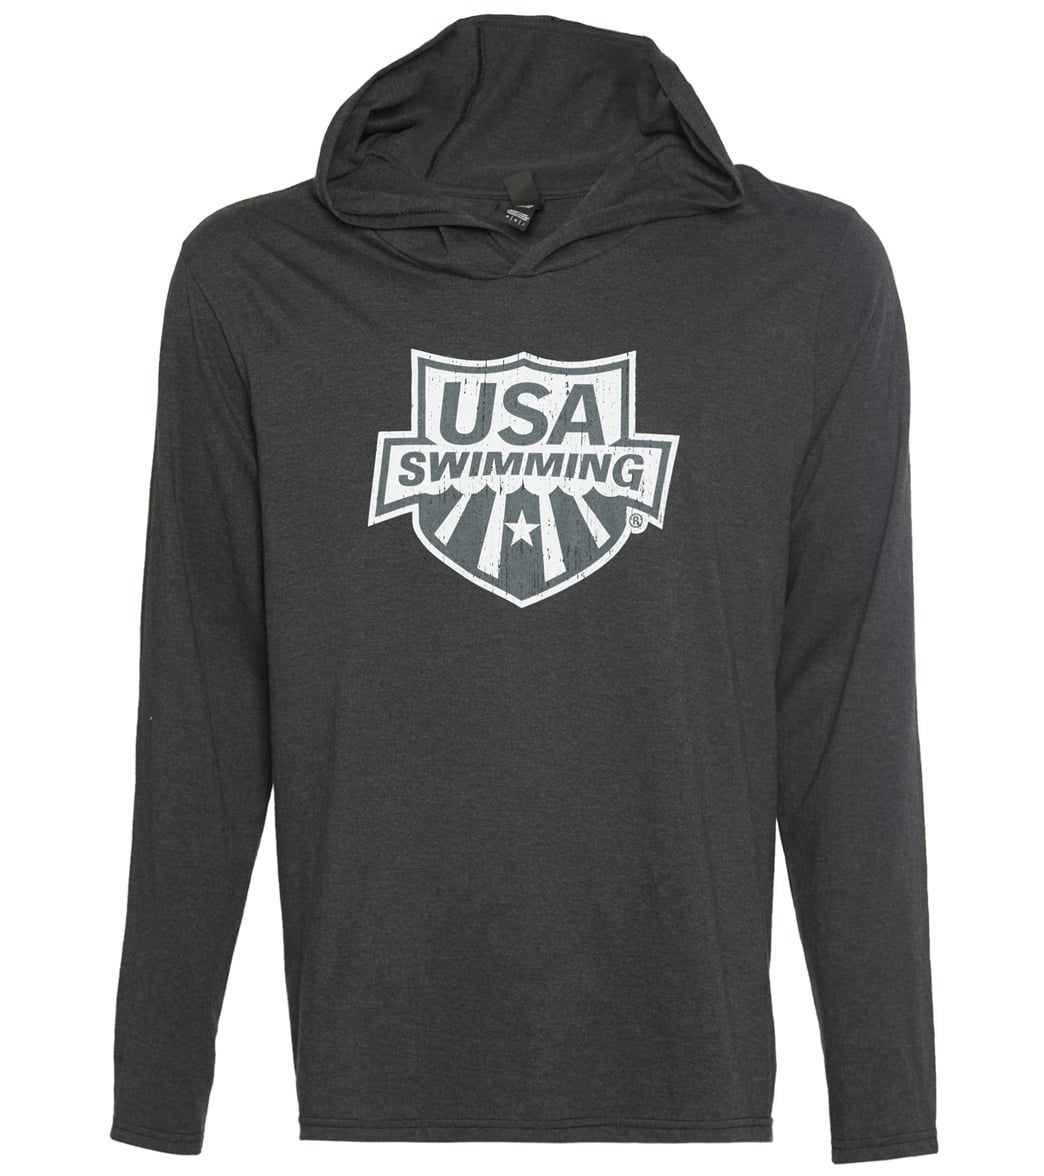 Show your pride, even outside the pool in the USA Swimming Unisex Lightweight Long Sleeve Hoodie.|https://www.swimoutlet.com/p/usa-swimming-unisex-lightweight-long-sleeve-hoodie-8196332/?color=9325|34.95|cal2